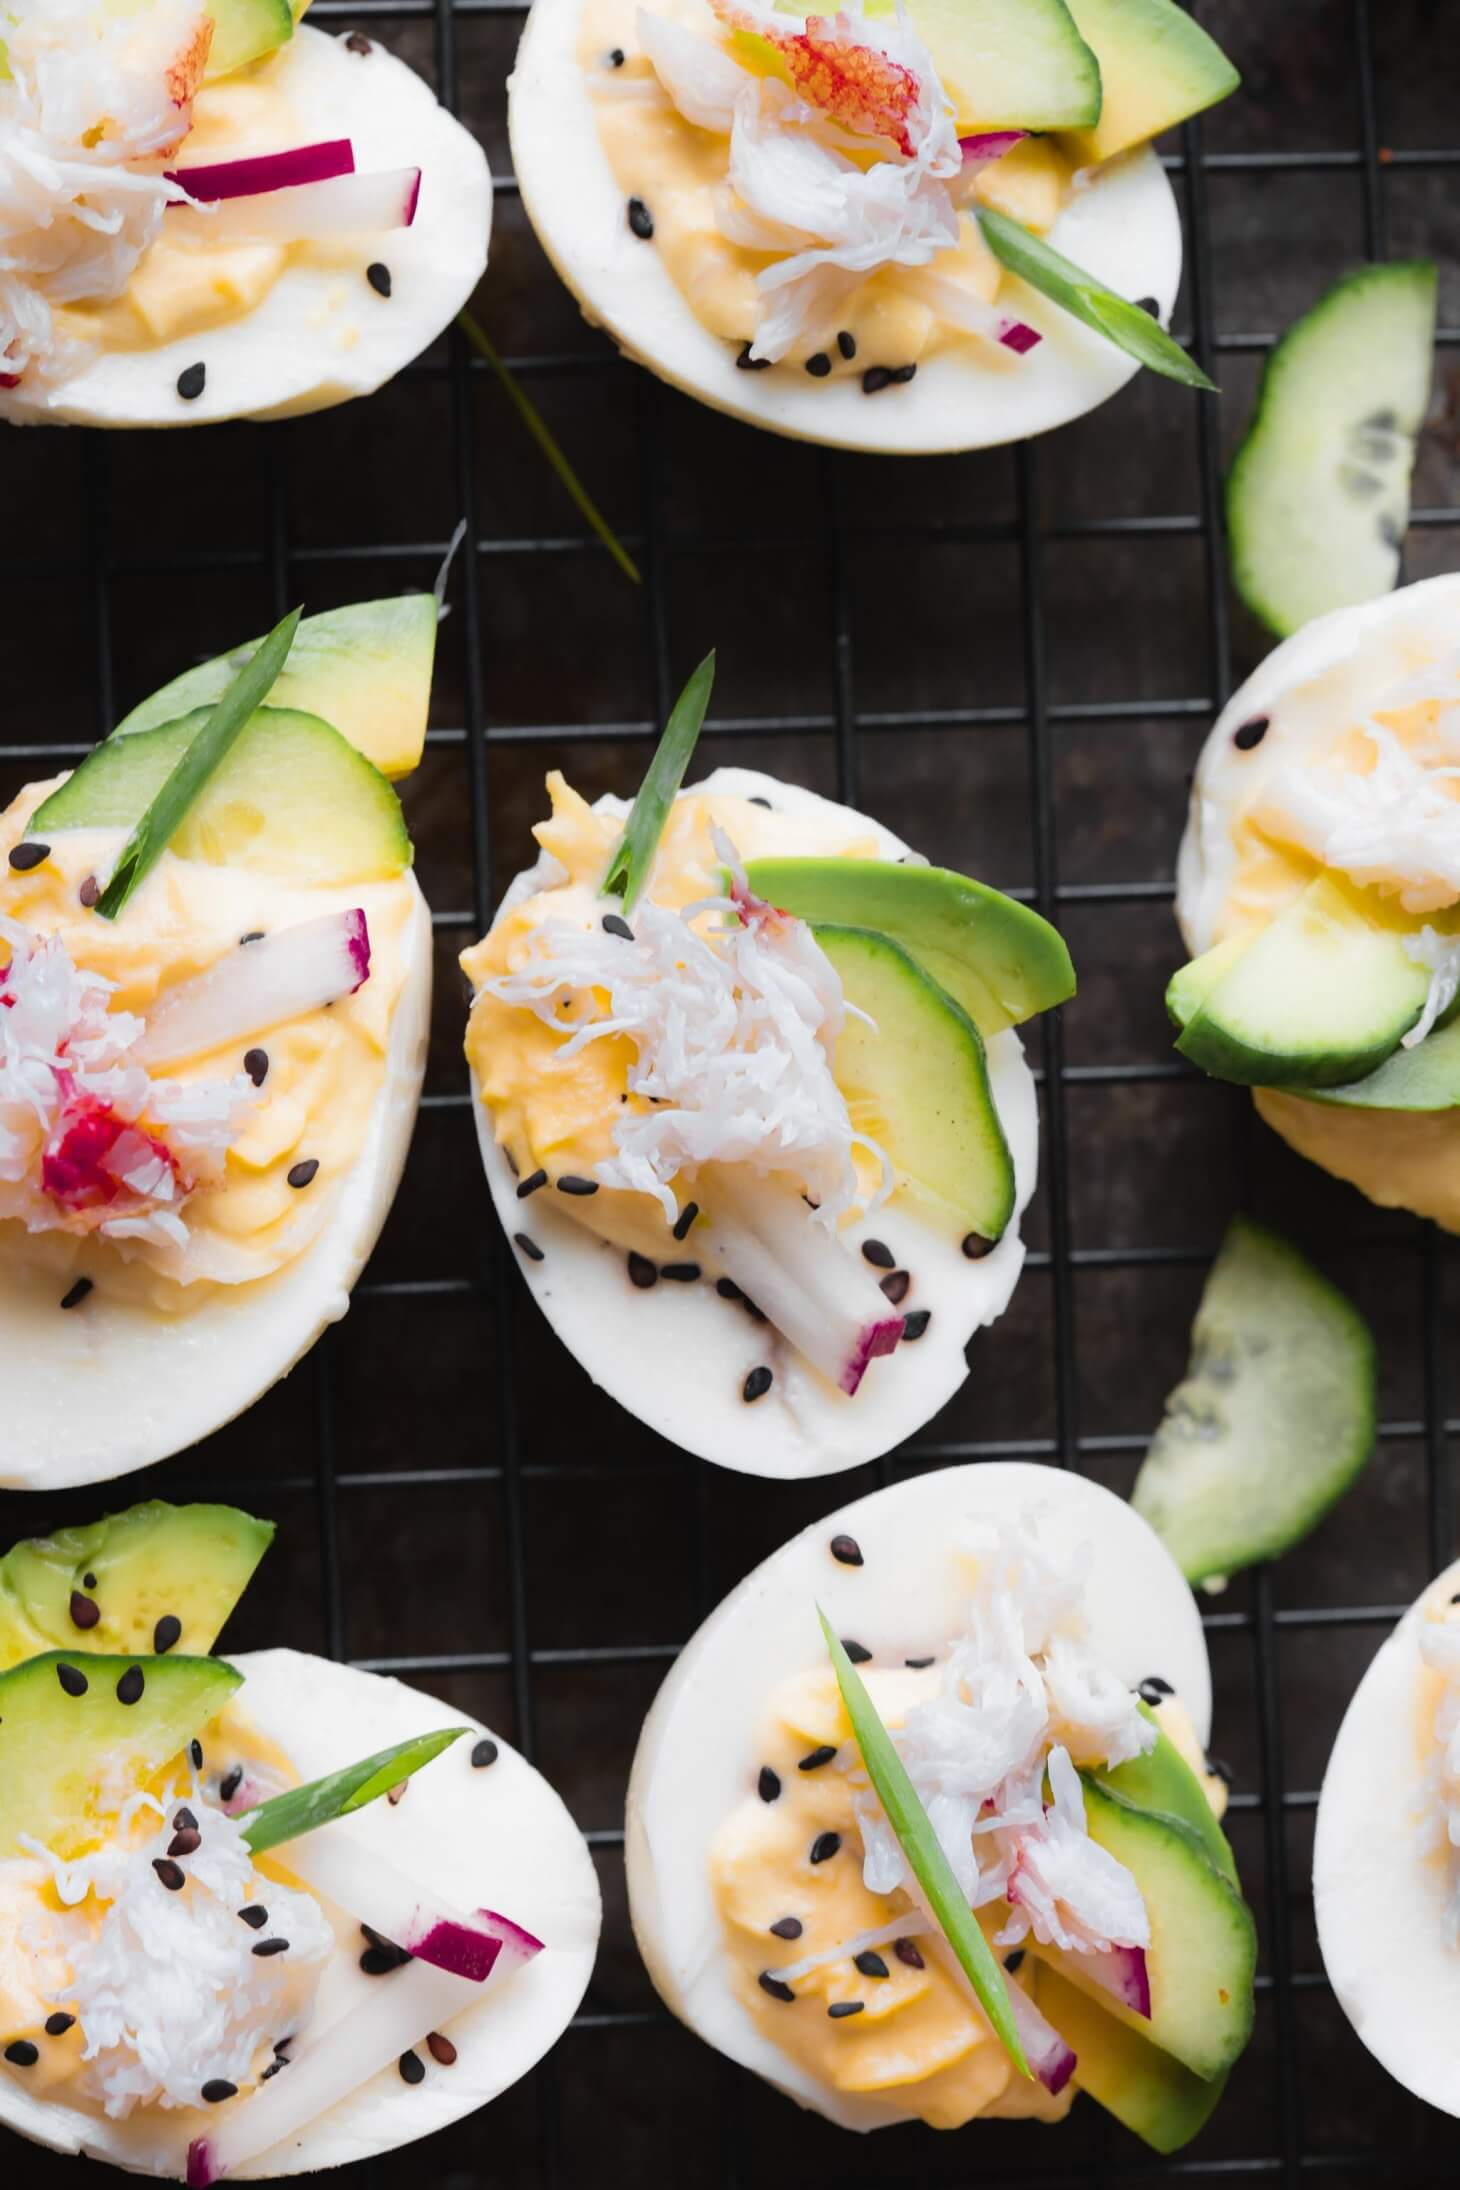 Stuffed crab deviled eggs on dark background topped with sesame seeds, avocado, radishes and cucumber.